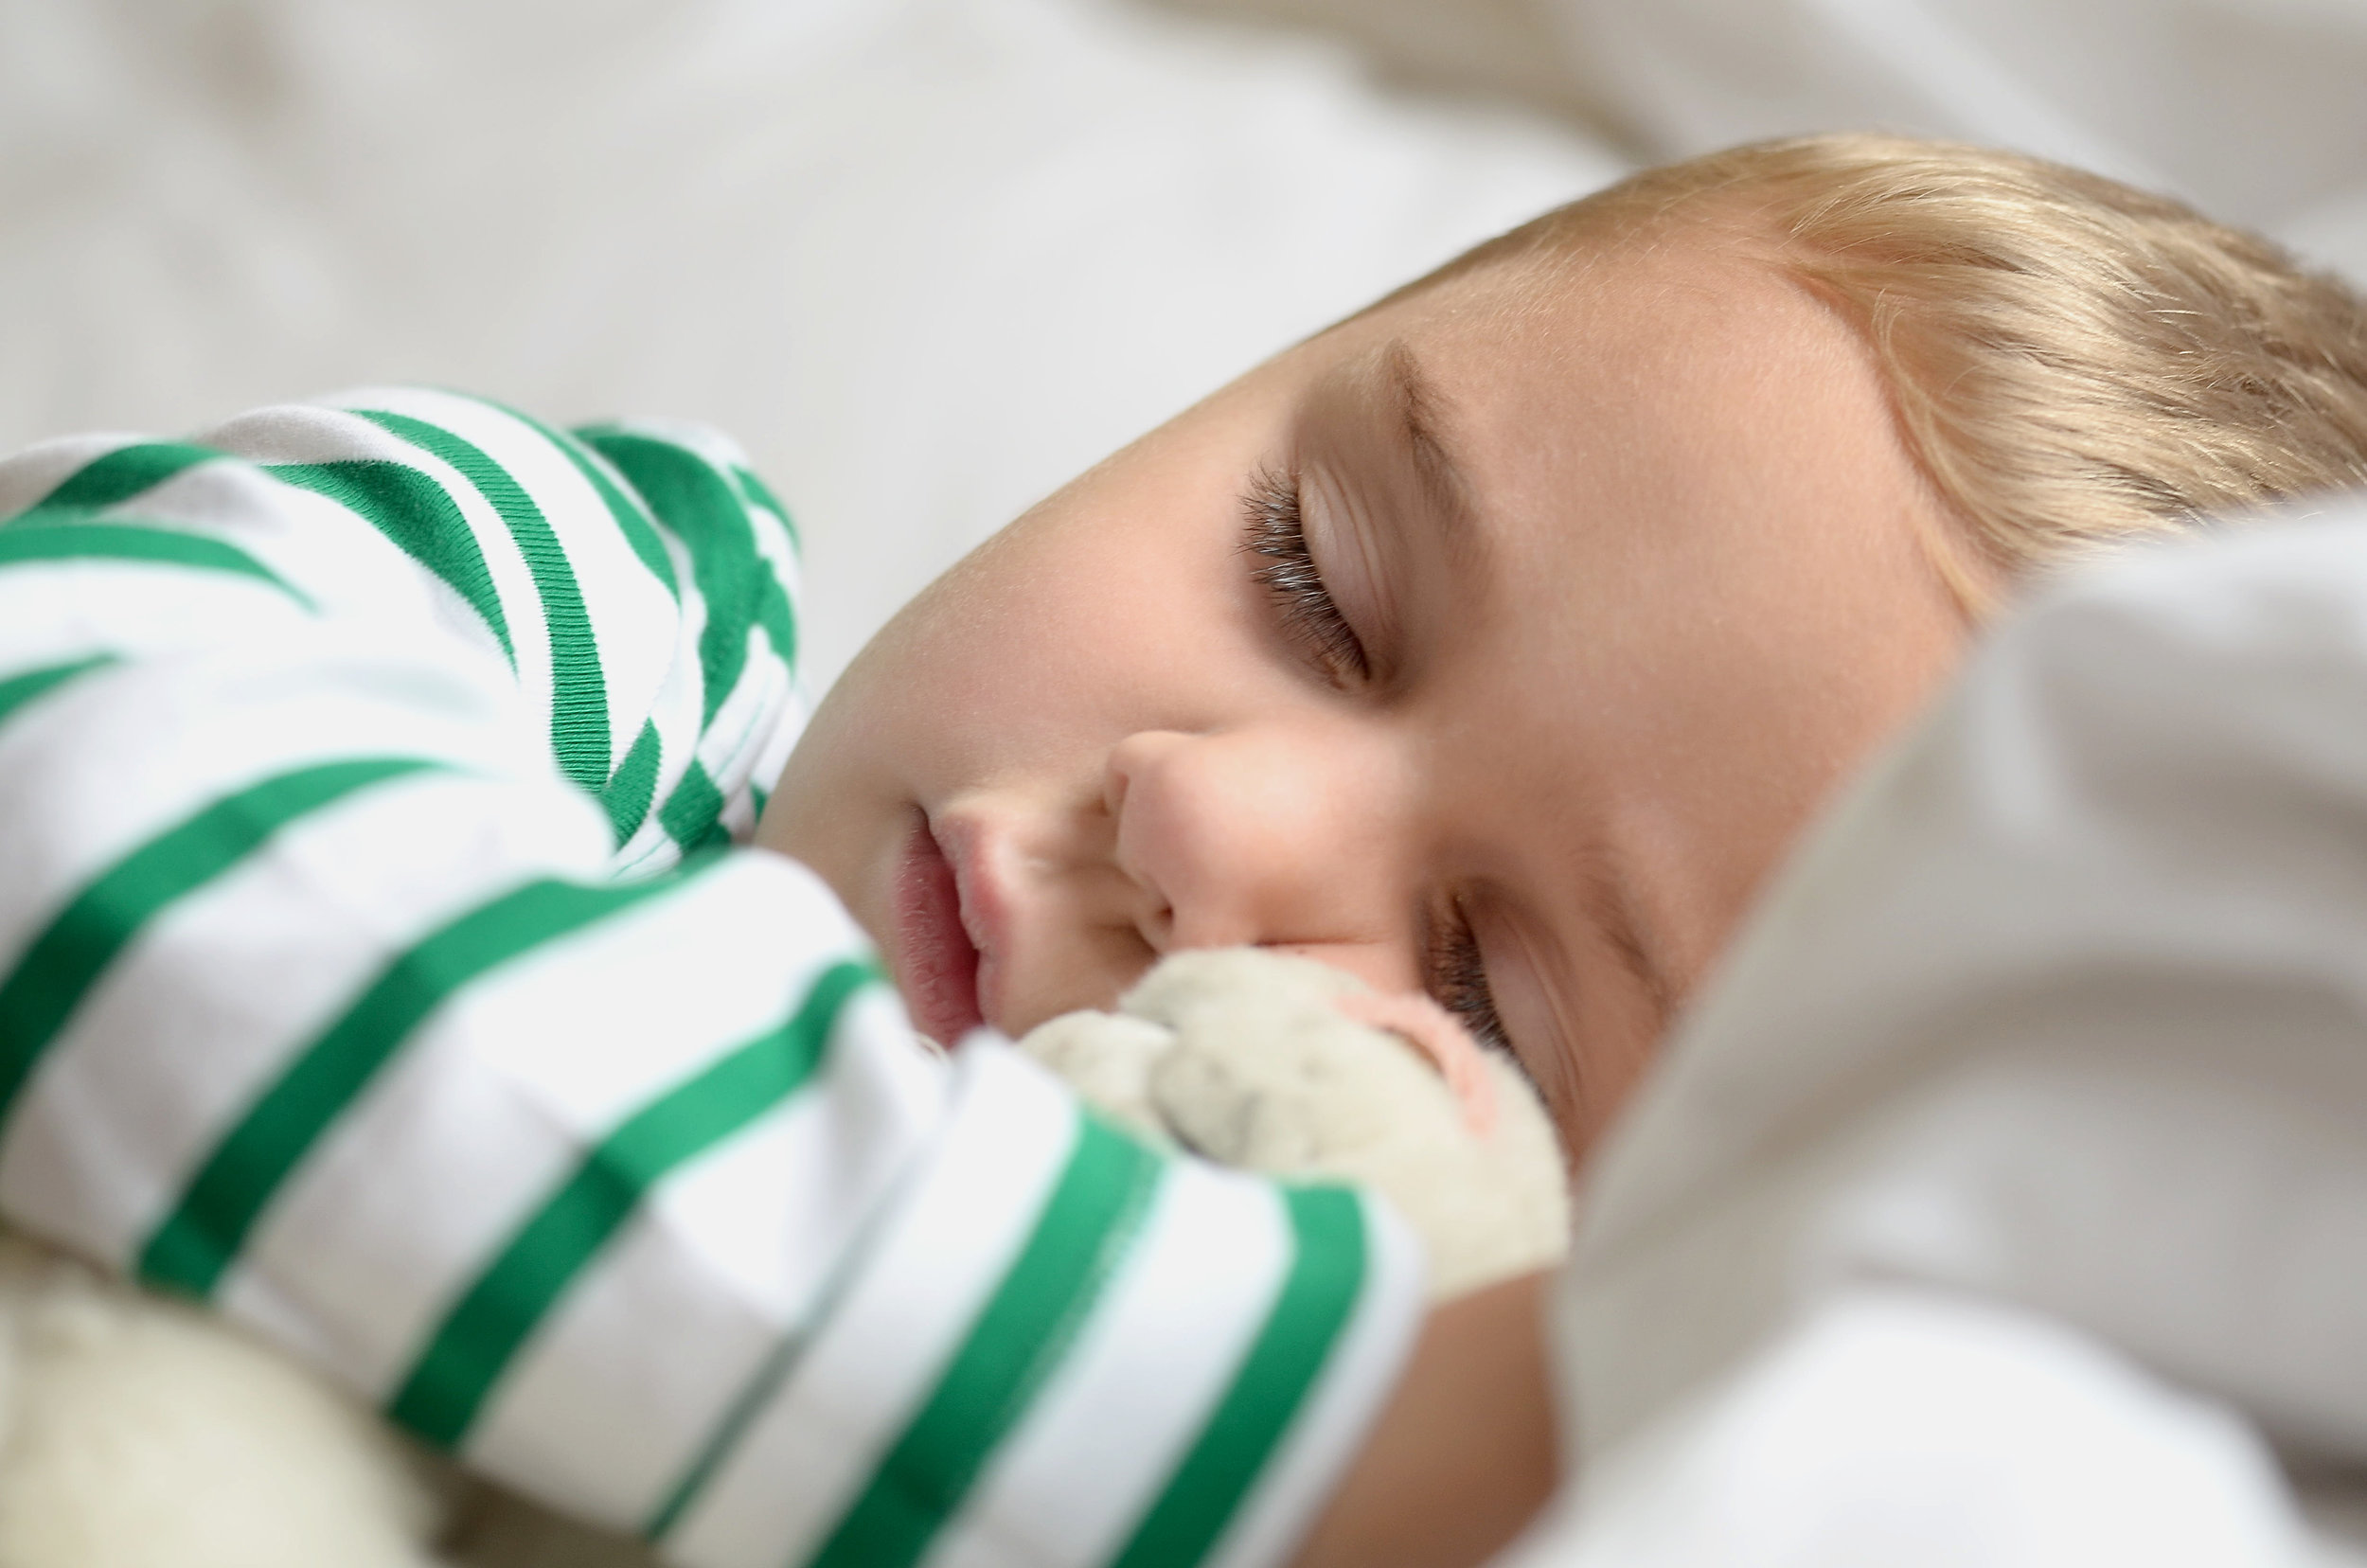 Let us help your child build good sleep habits that will last a lifetime!